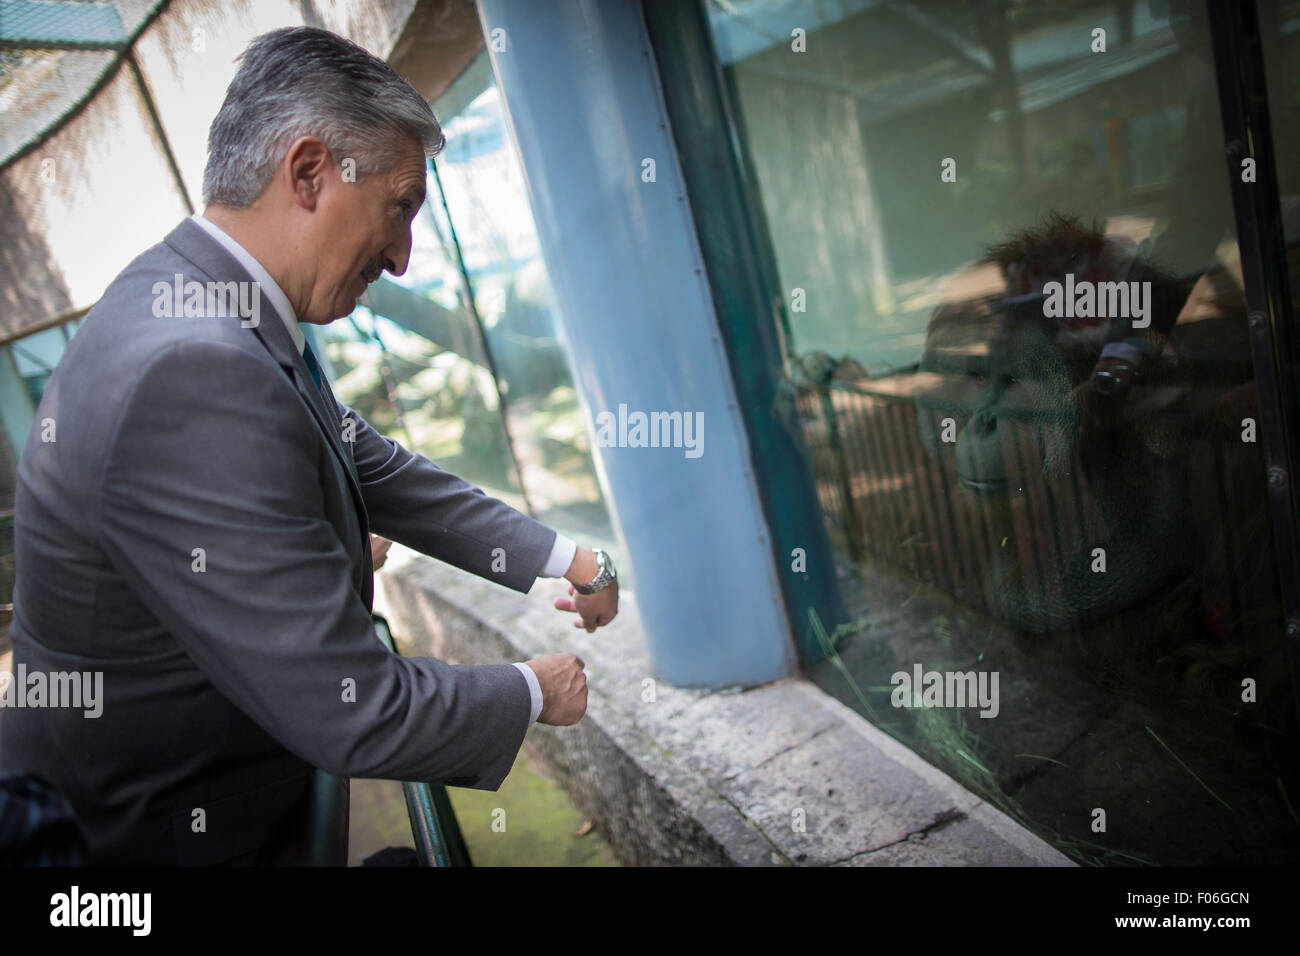 (150808) -- MEXICO CITY, Aug. 8, 2015 (Xinhua) -- Image taken on Aug. 3, 2015 shows the Veterinarian, Arturo Rivera - Stock Image